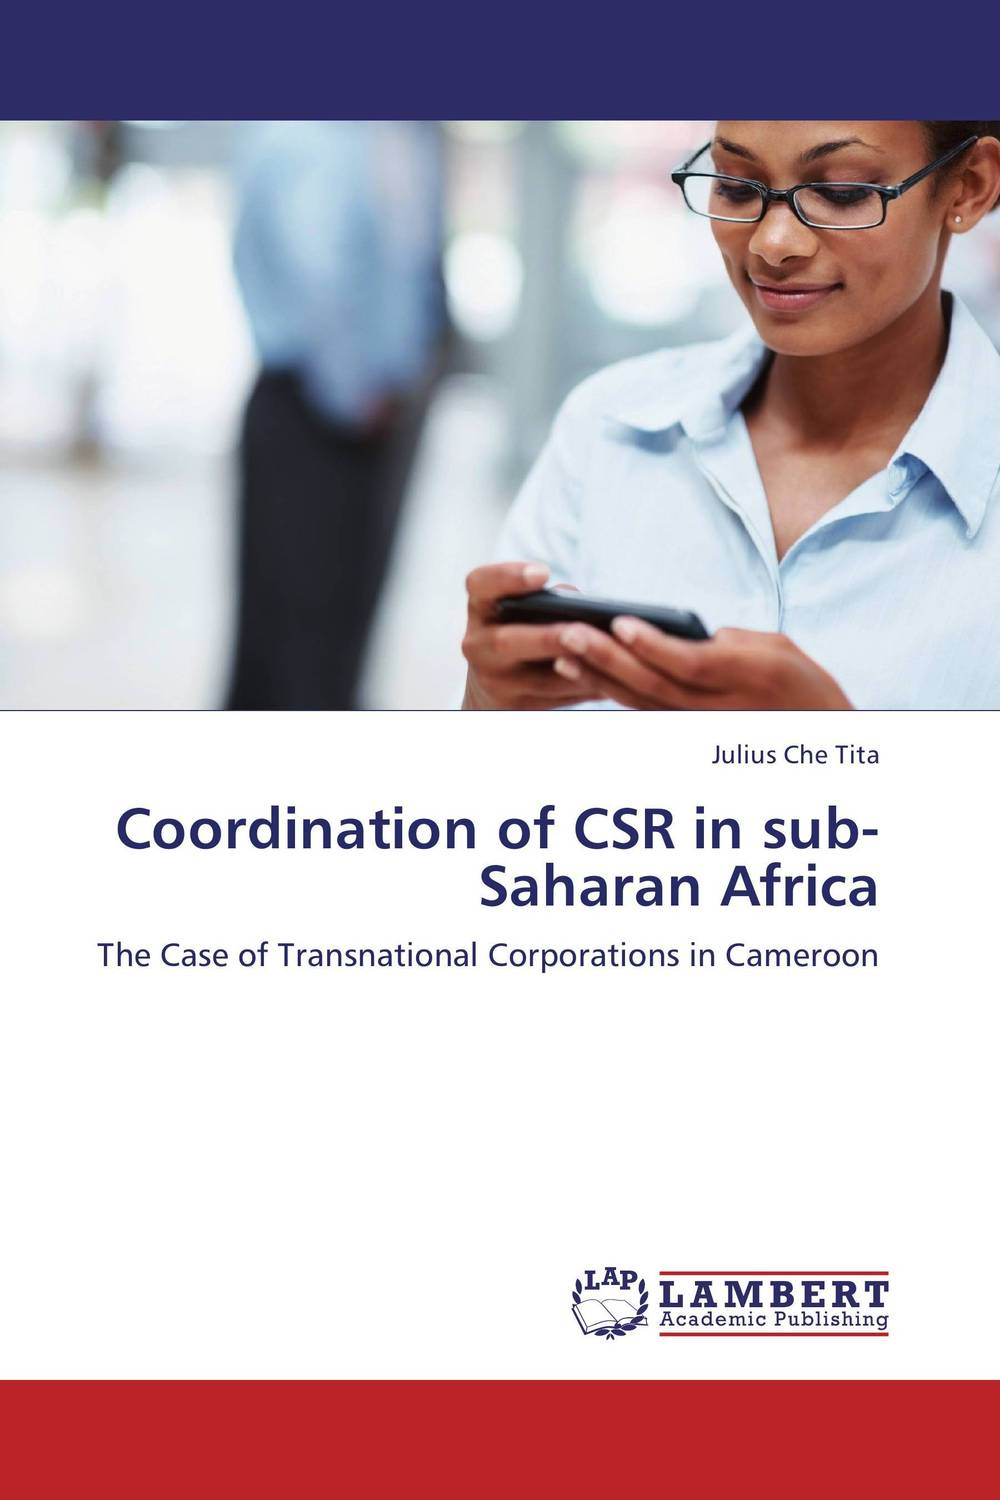 Coordination of CSR in sub-Saharan Africa mastering autodesk inventor 2008 includes cd–rom